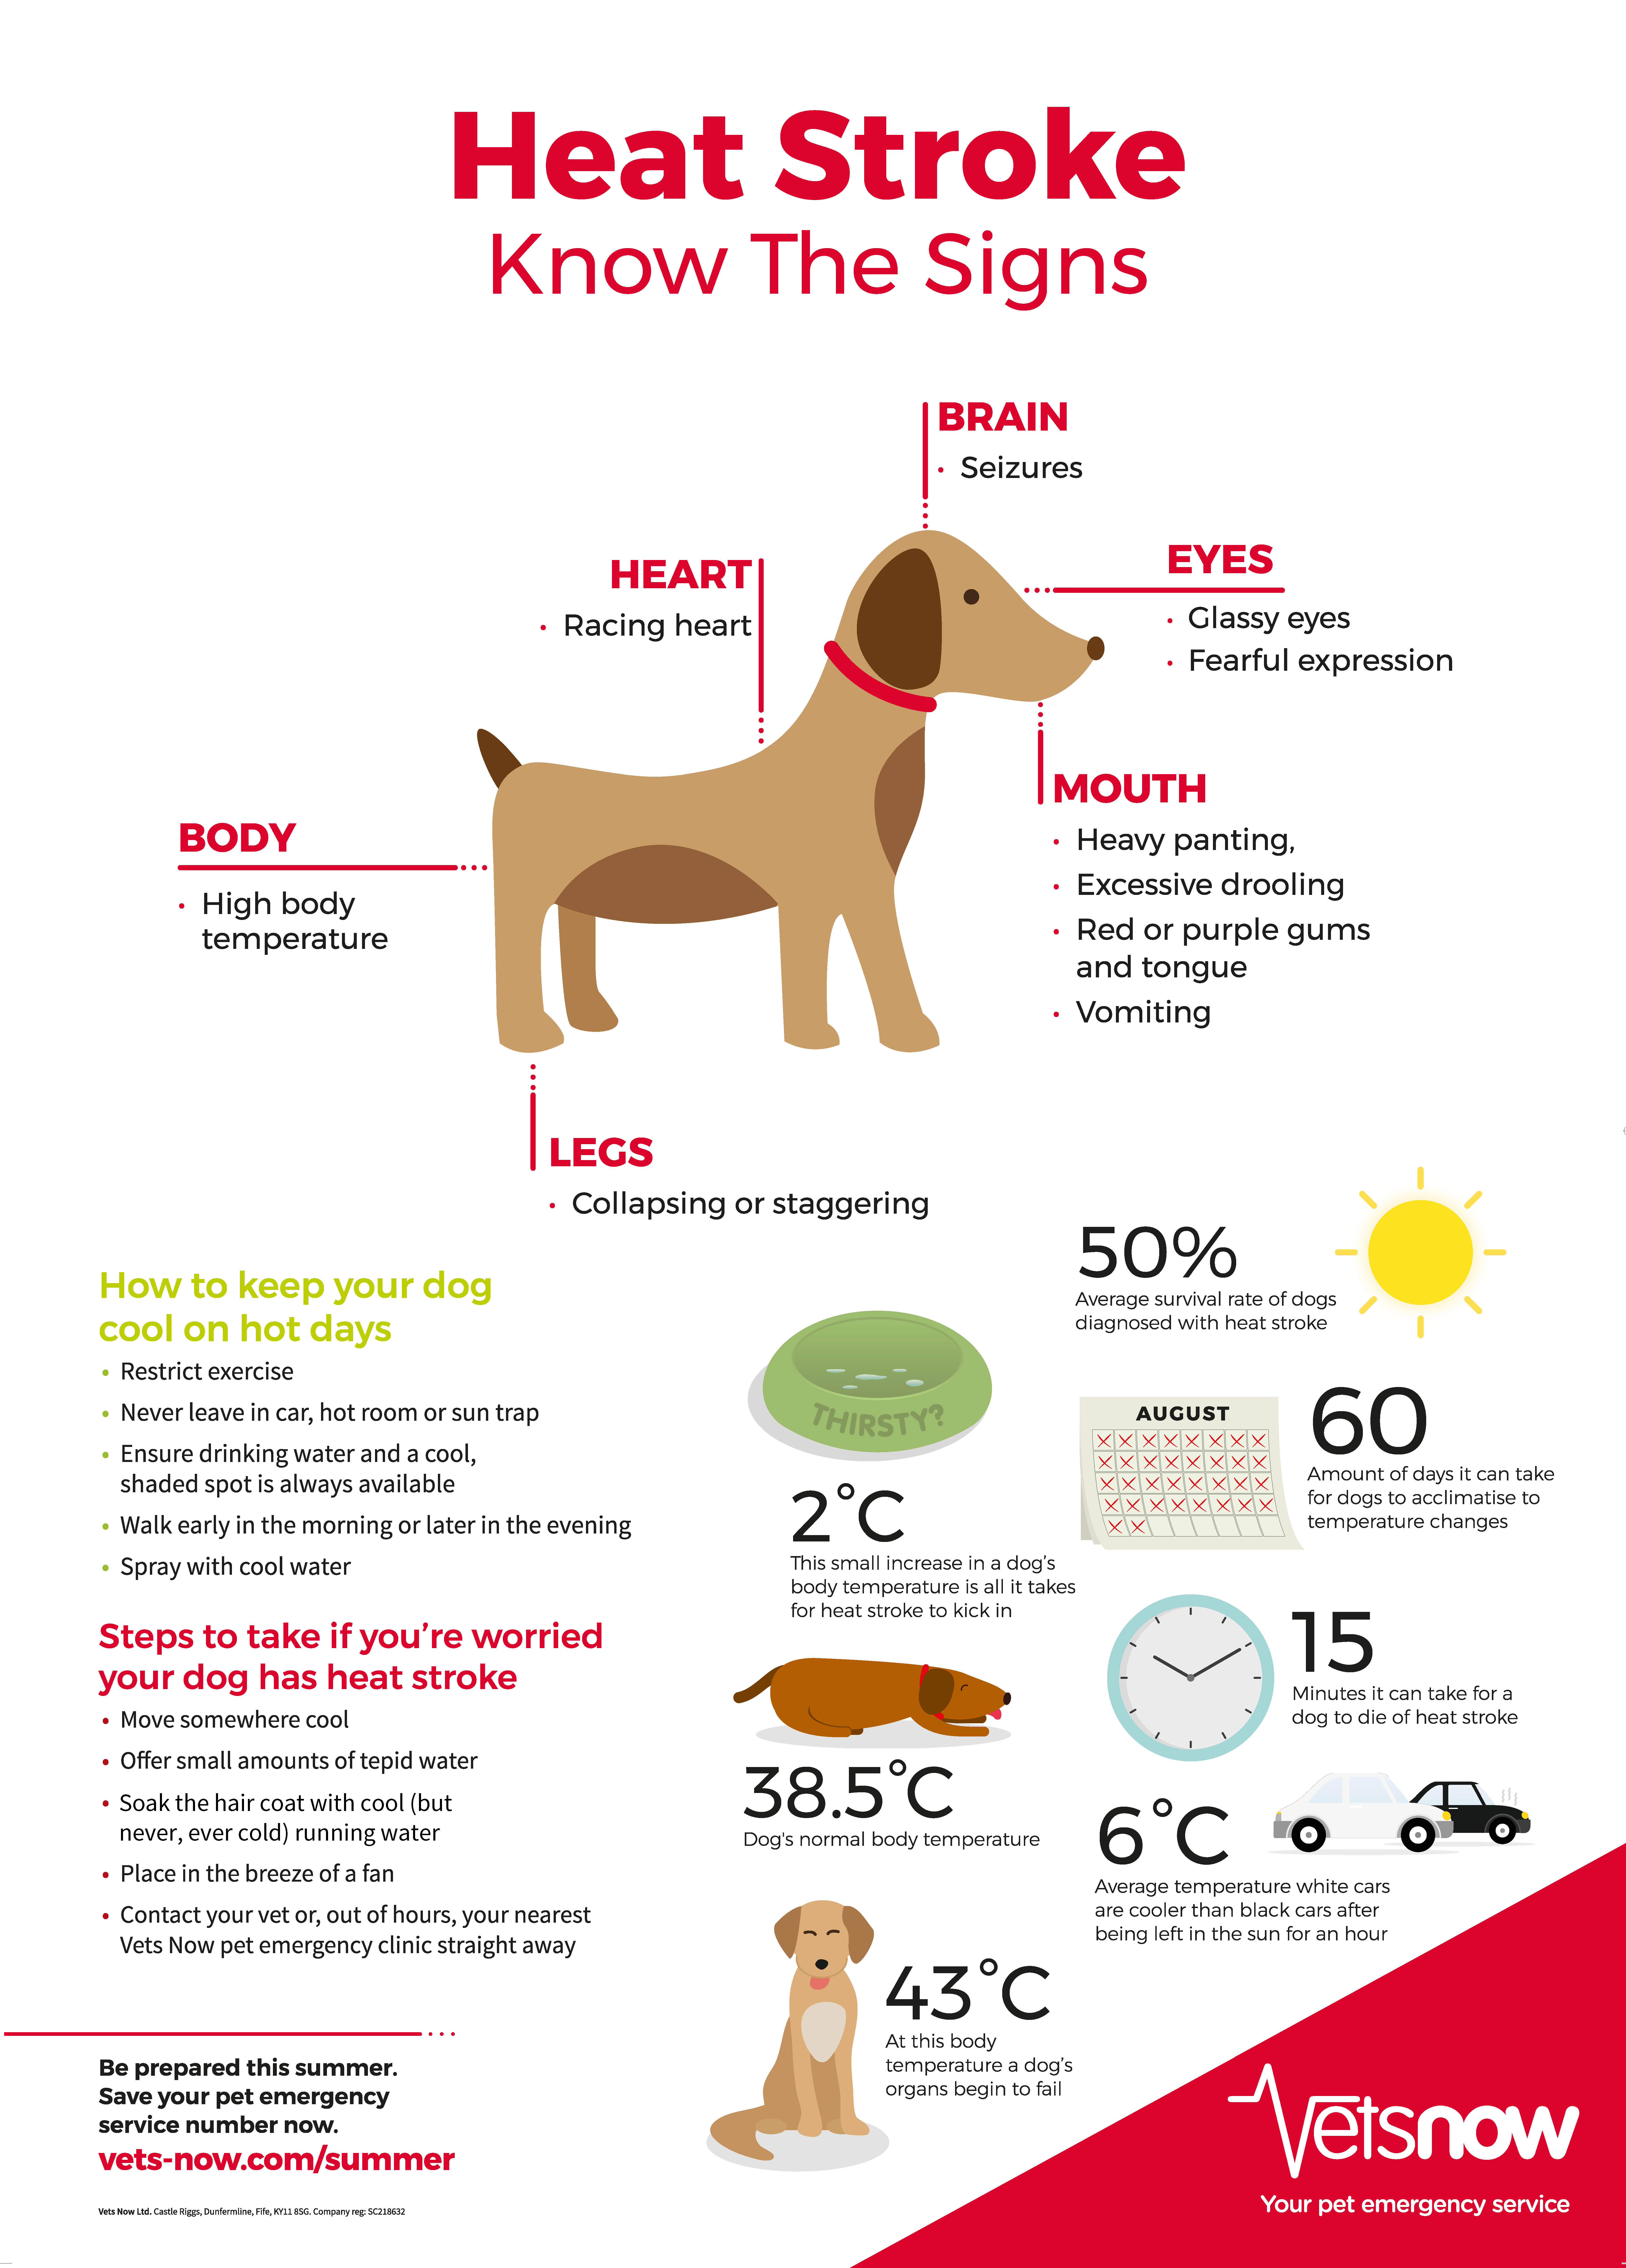 How to Take Your Dog's Temperature